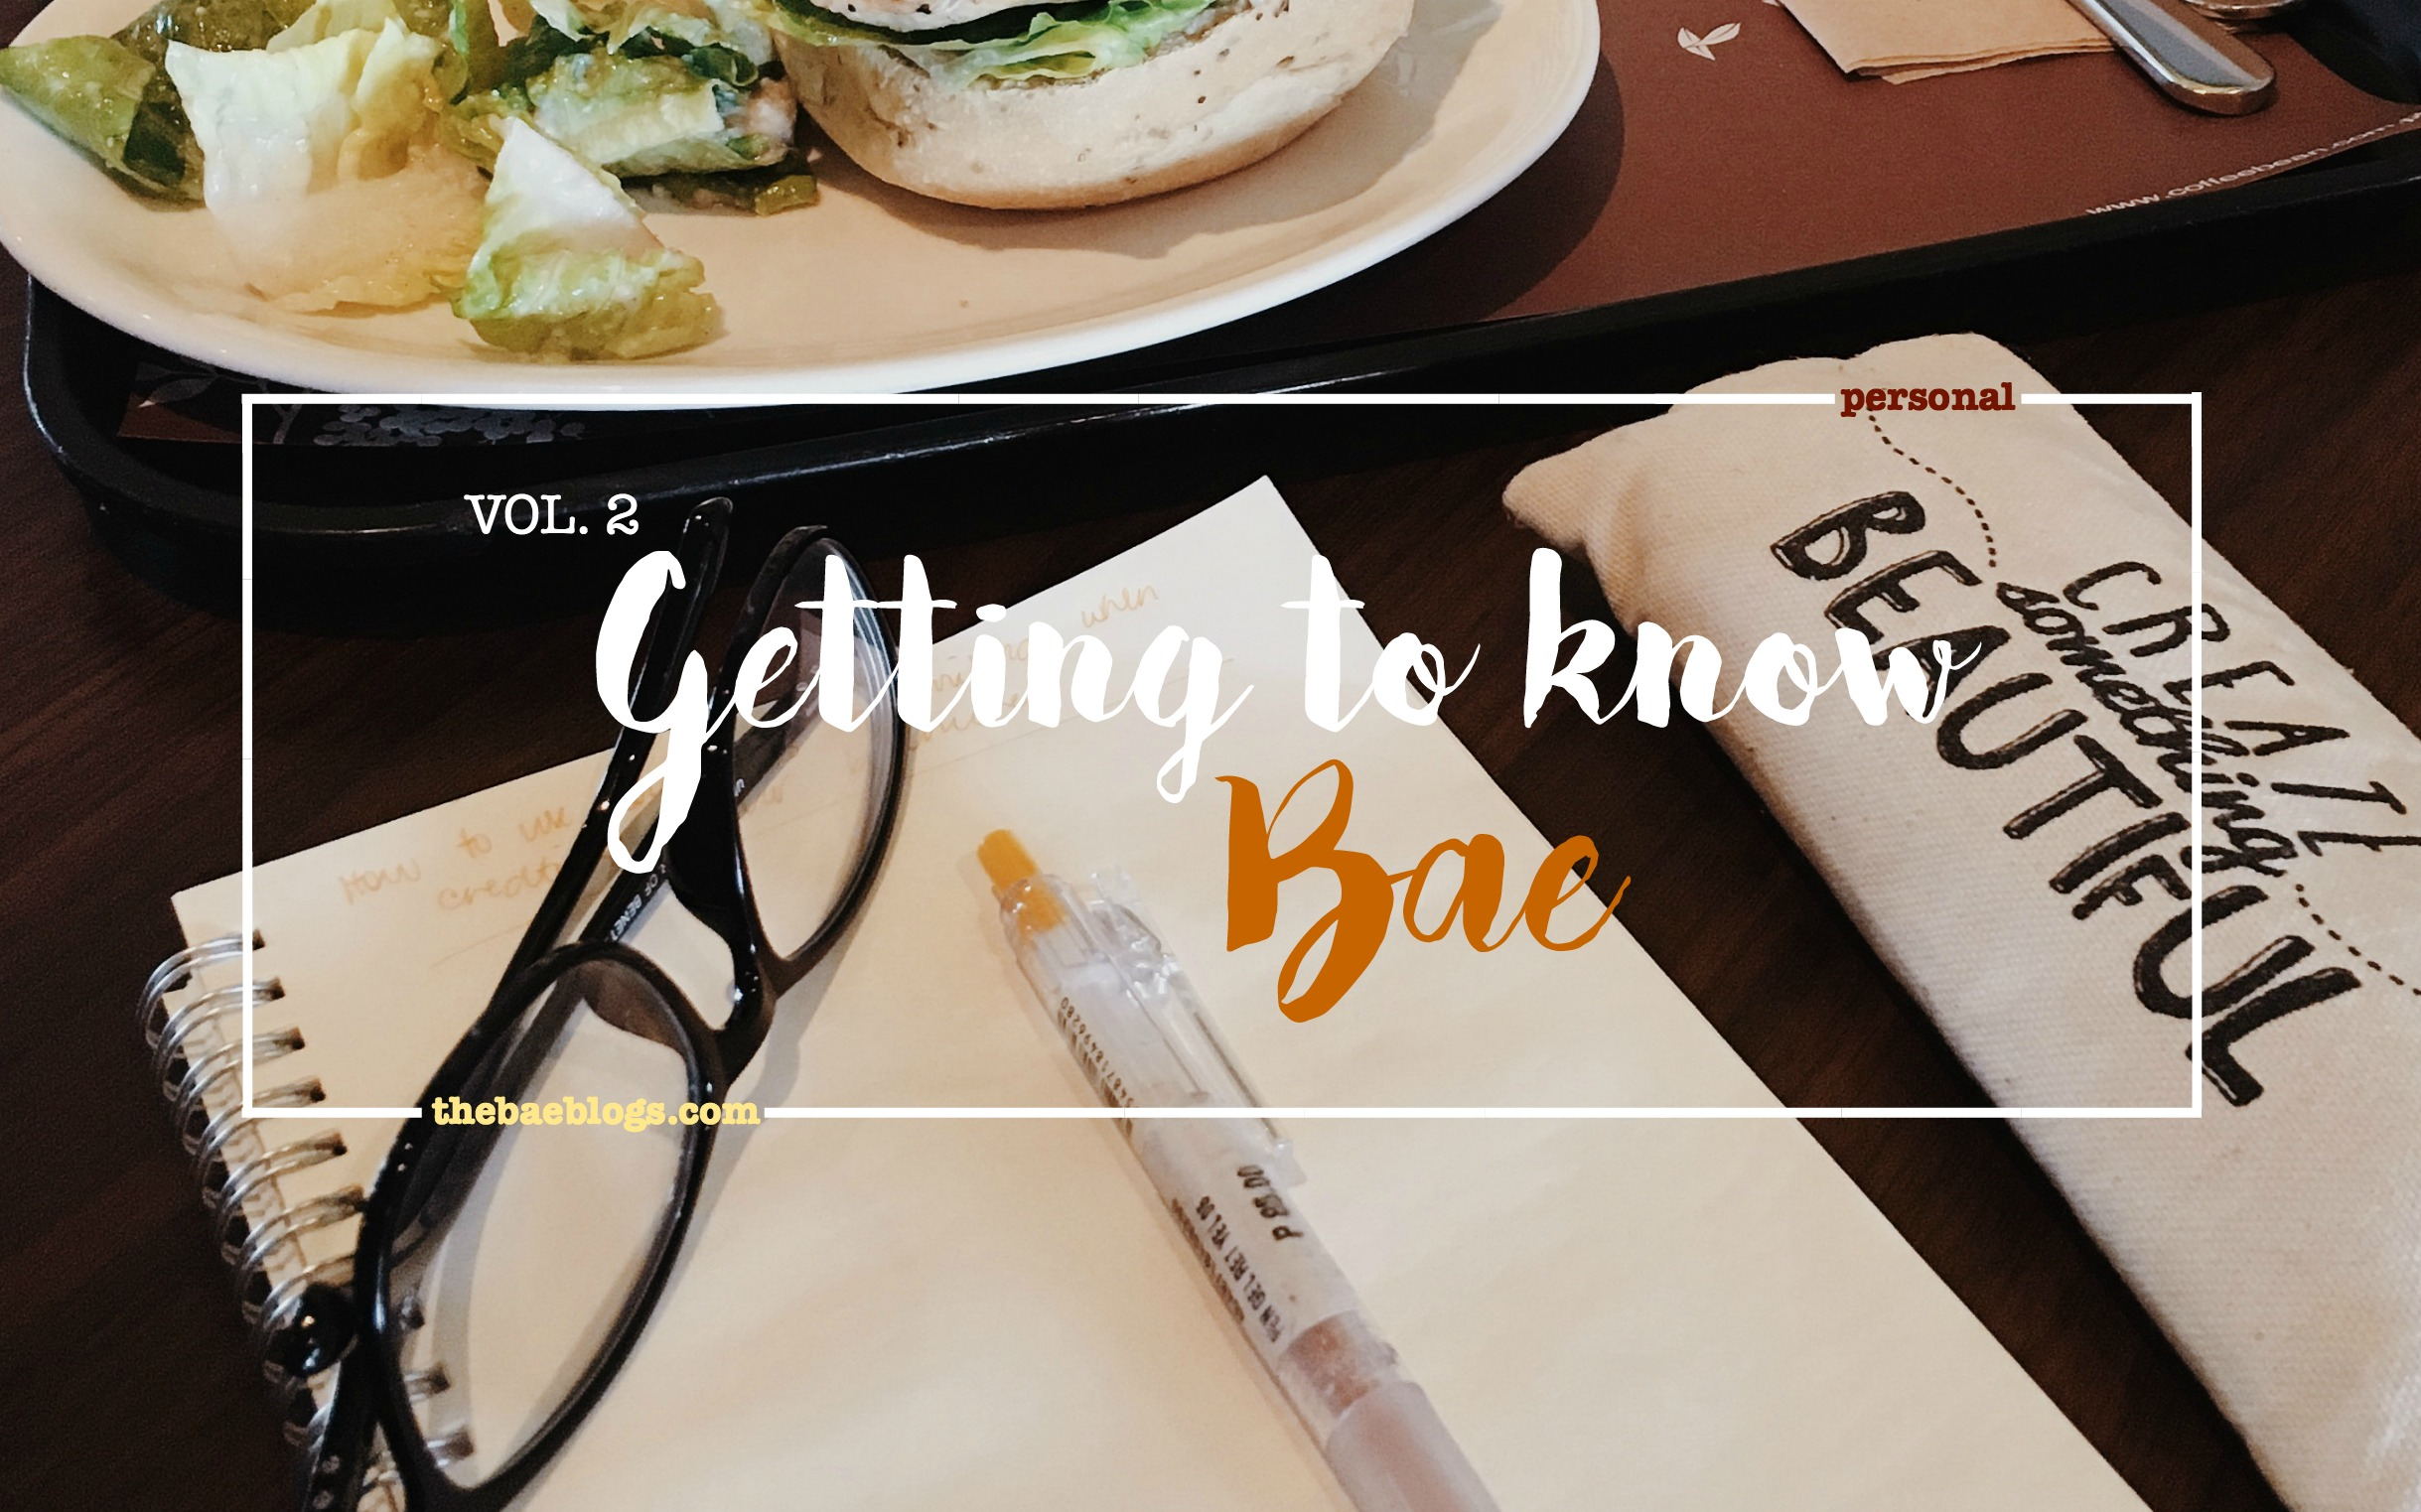 Getting to know Bae: Vol. 2